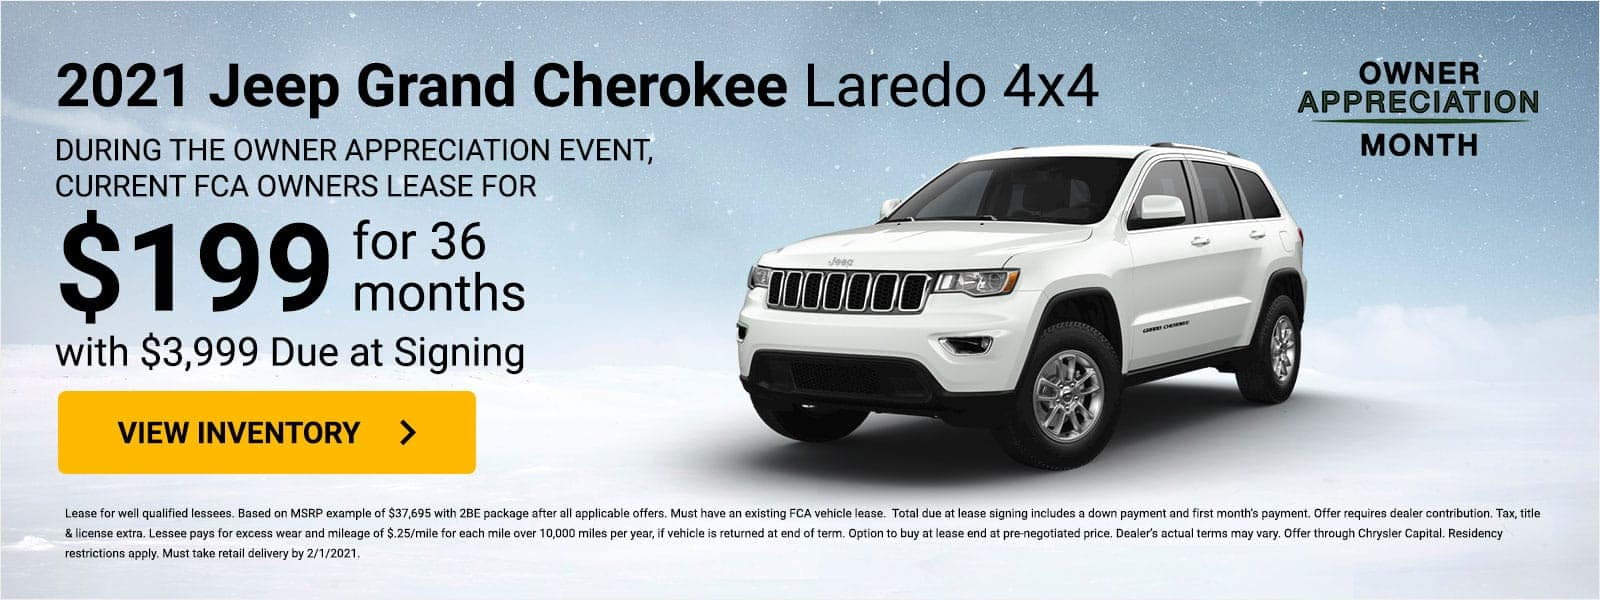 jeep-grand-cherokee-laredo-4x4-LEASE